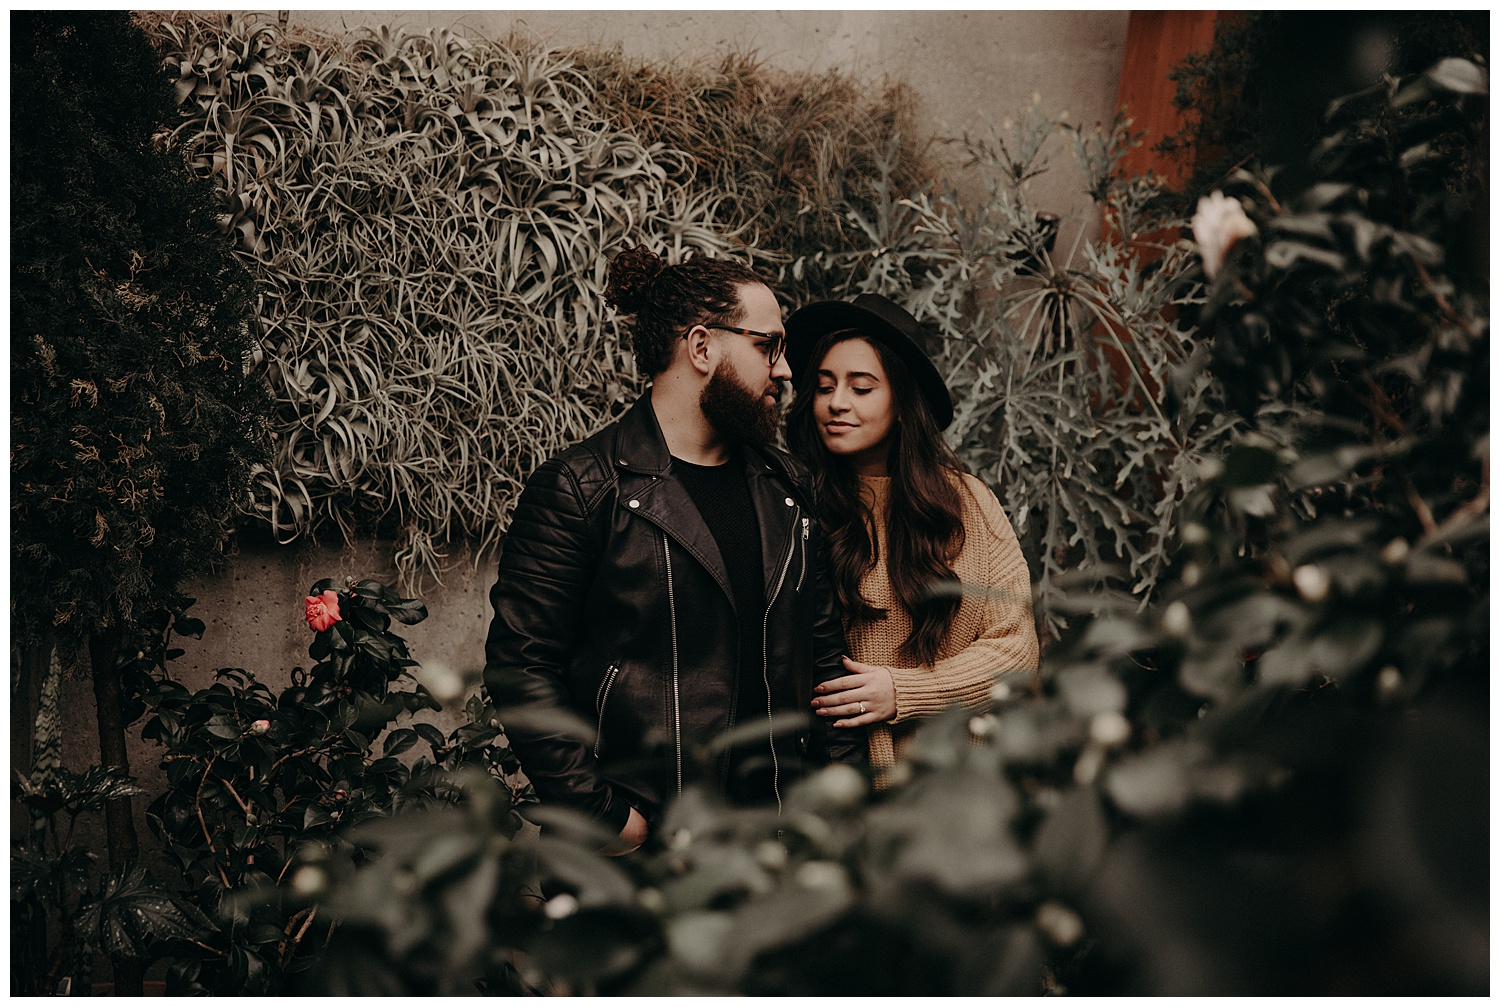 danilo-andrea-botanicals-winter-engagement-session-boston-massachusetts08.jpg